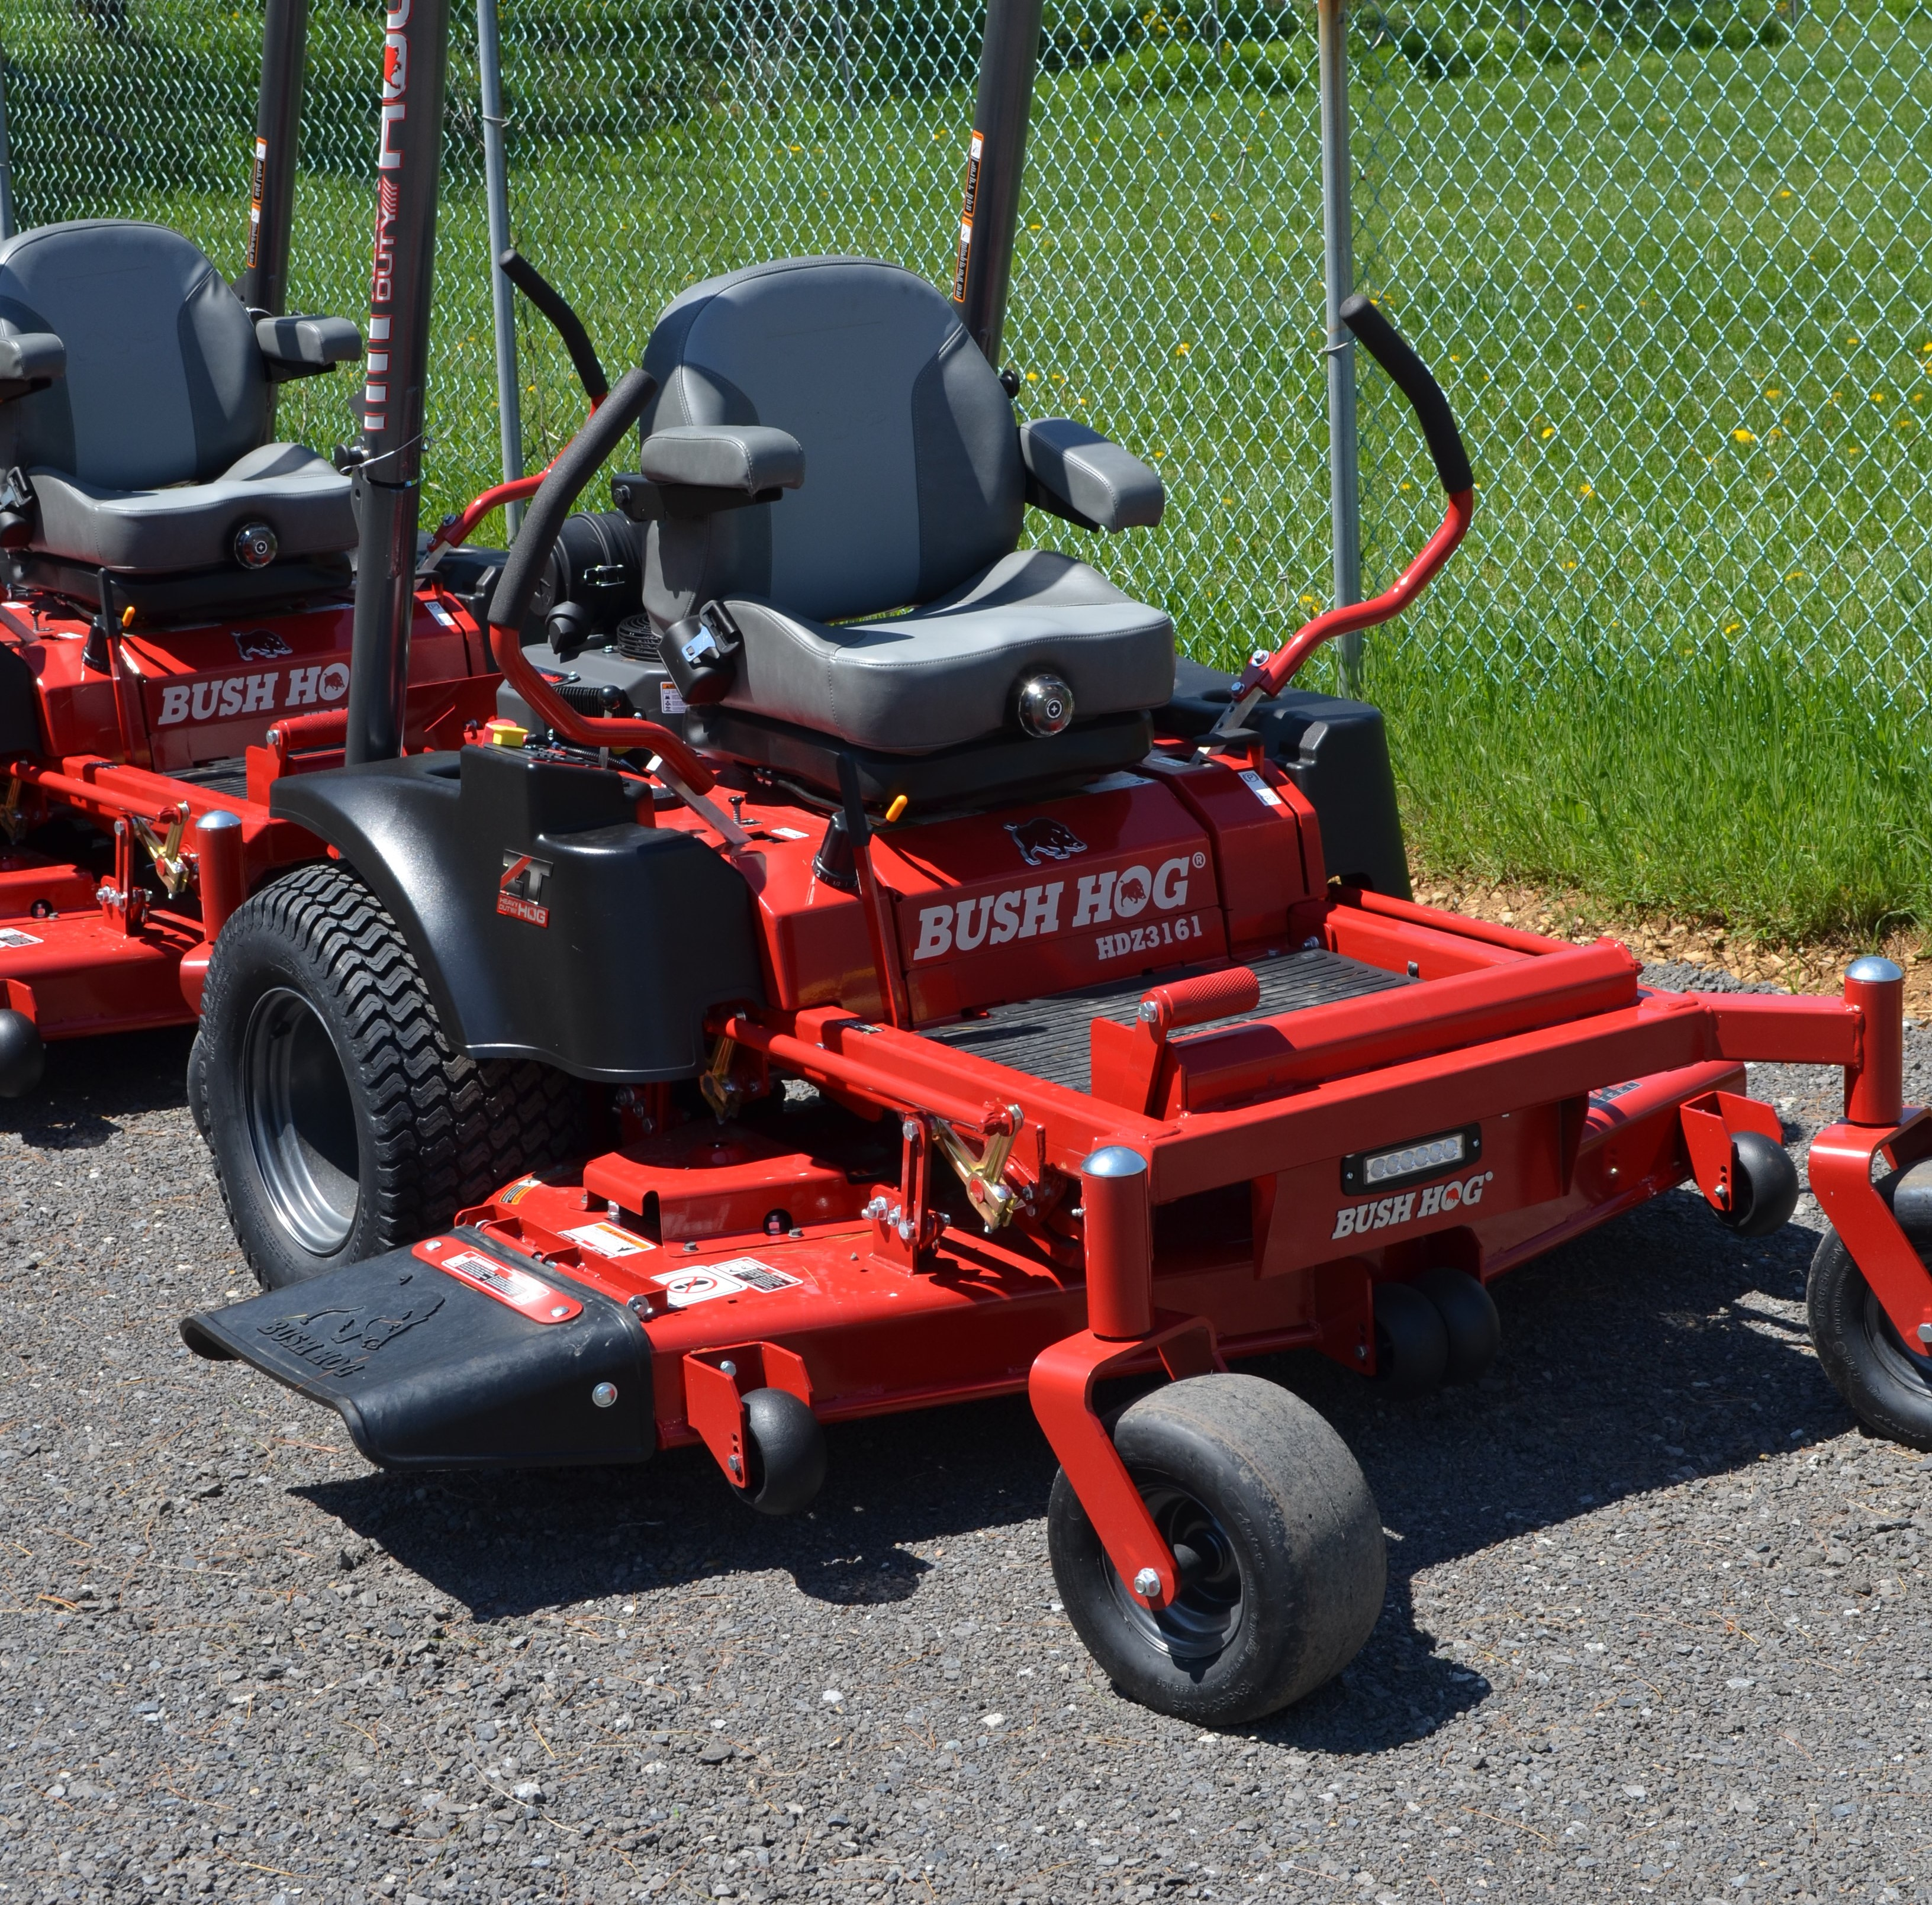 Bush Hog HDZ-3161 Zero Turn Mower Image